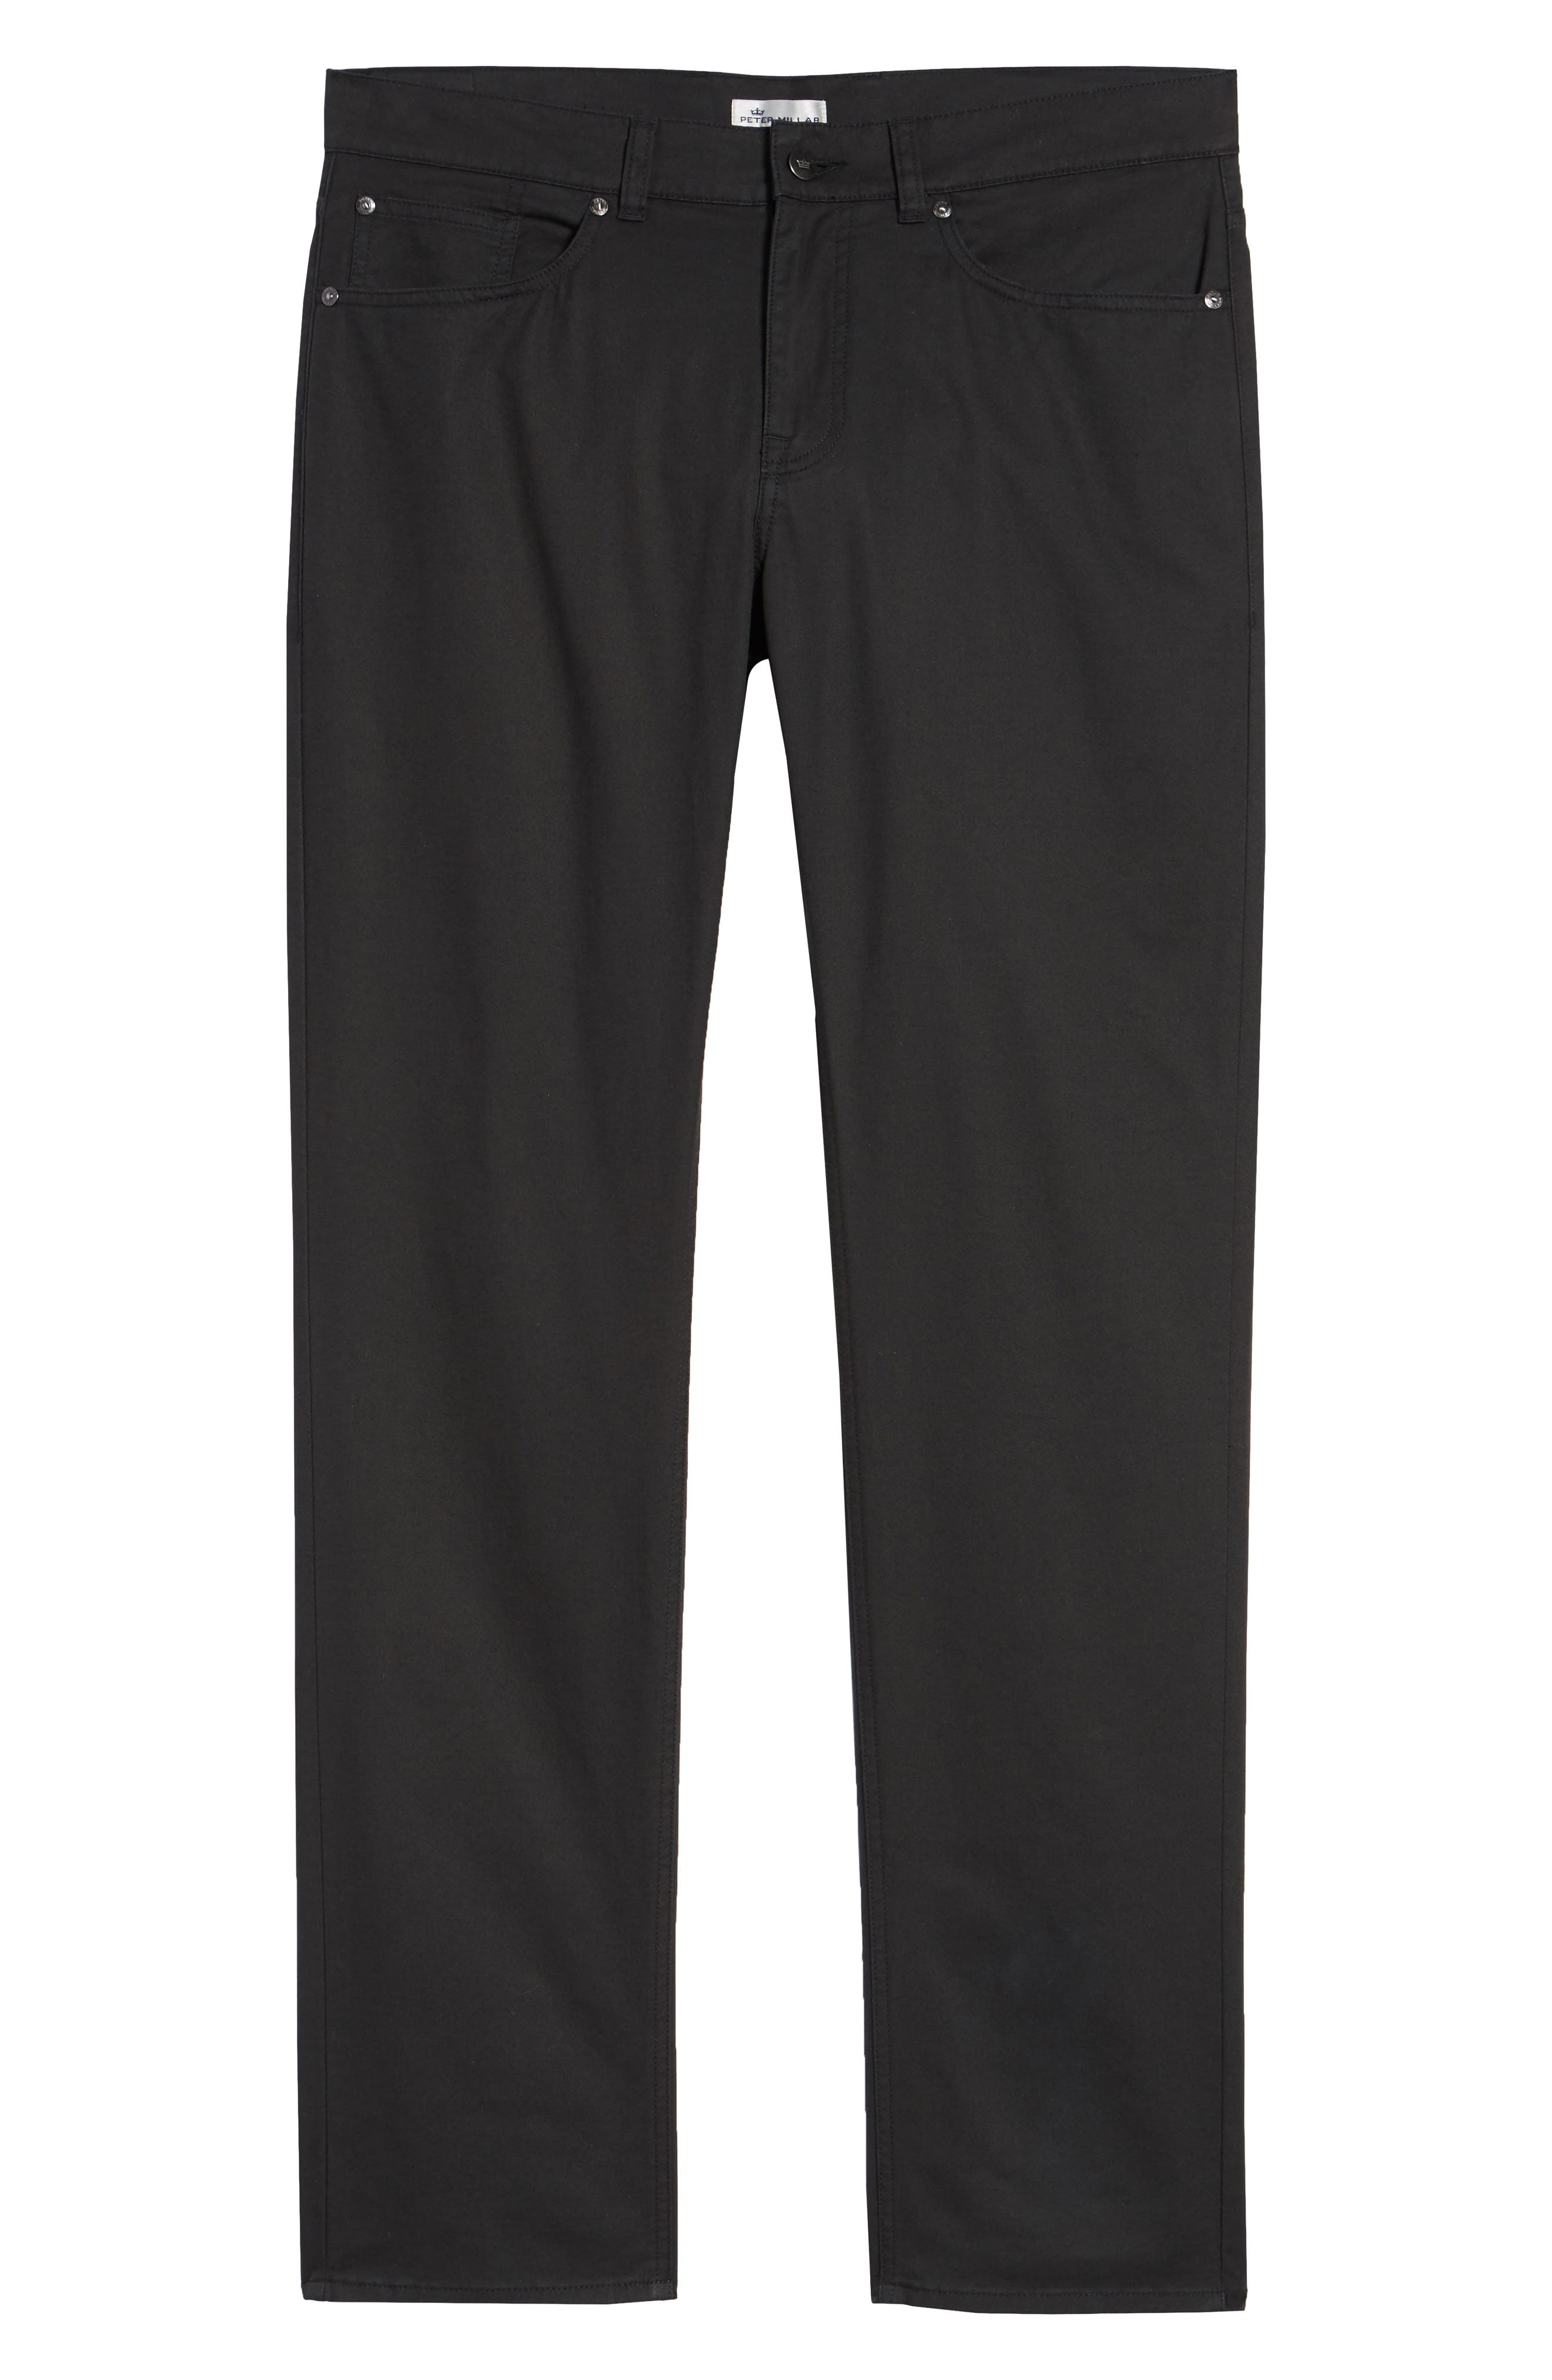 Soft Touch Twill Pants,                             Alternate thumbnail 6, color,                             BLACK